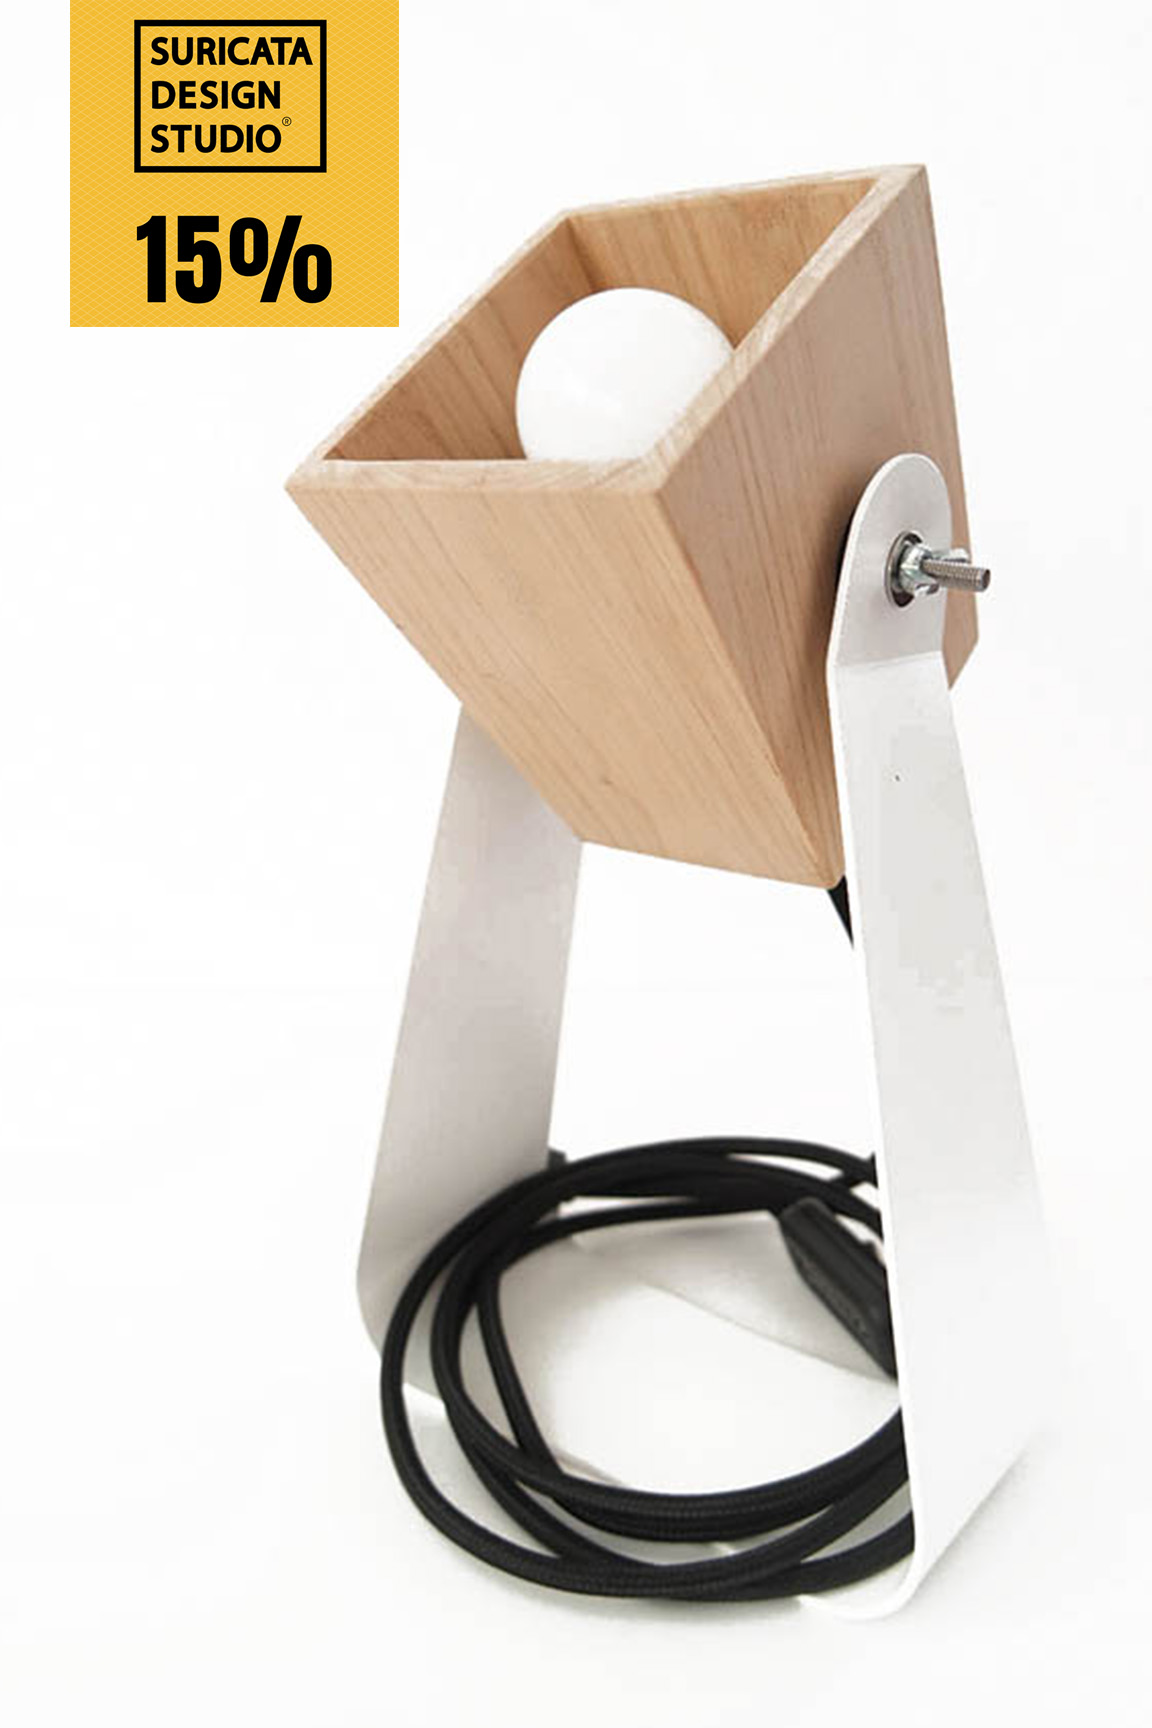 I DO! Lamp | BRANCO (WHITE)